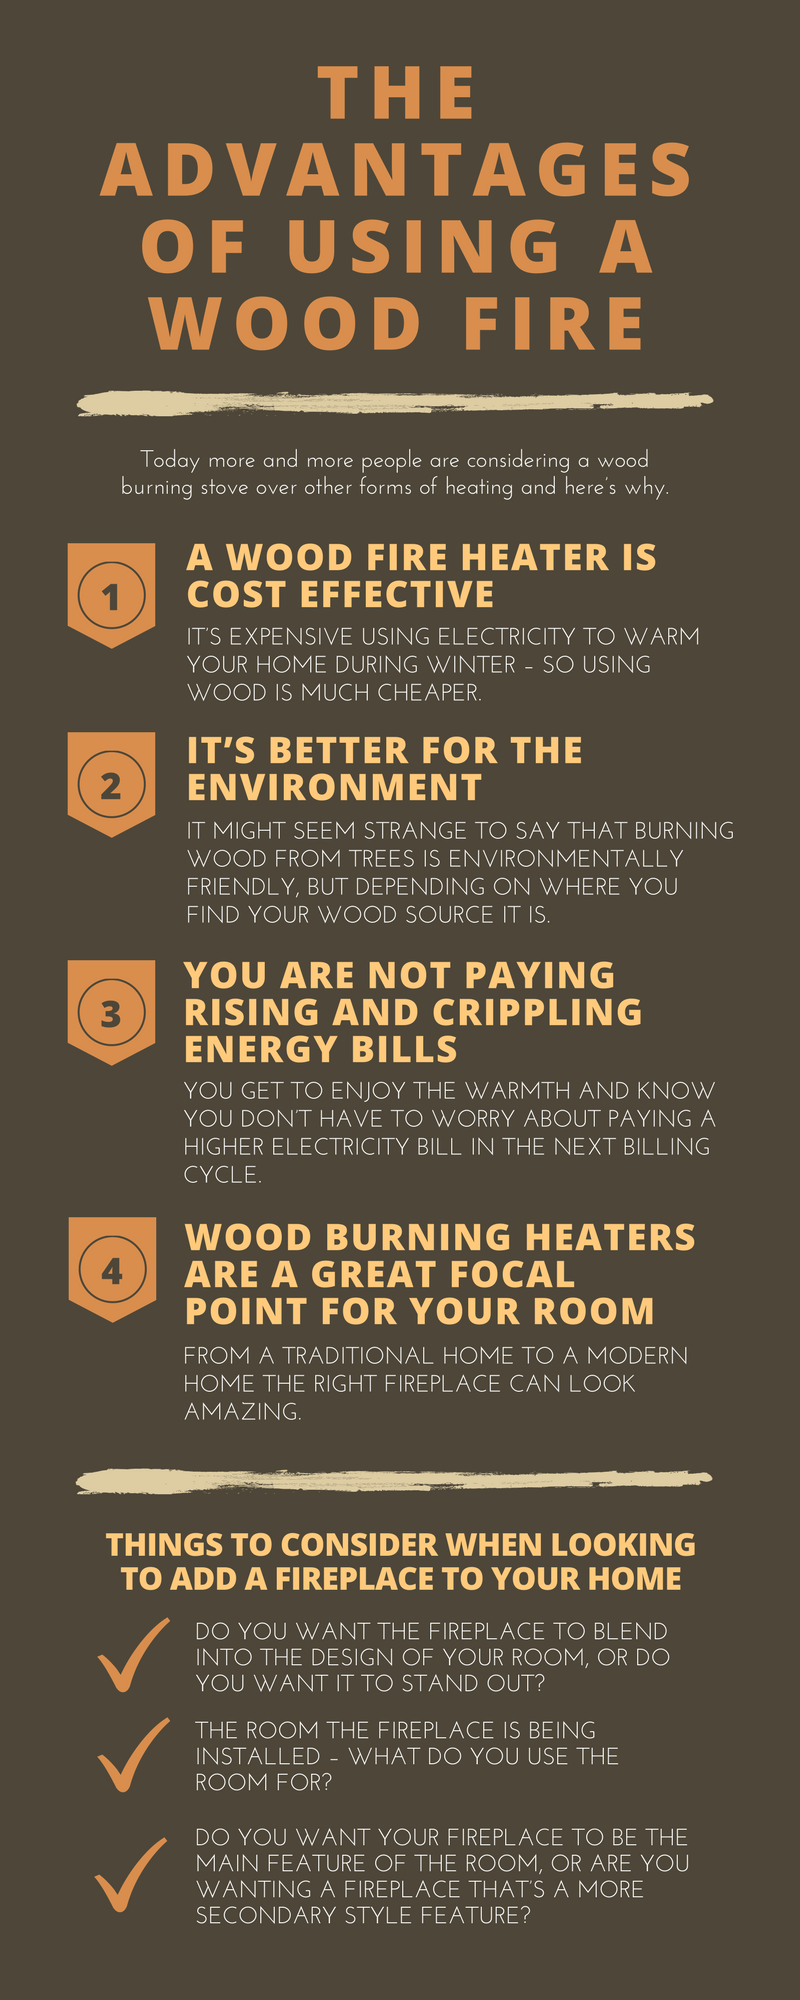 The Advantages of Using a Wood Fire